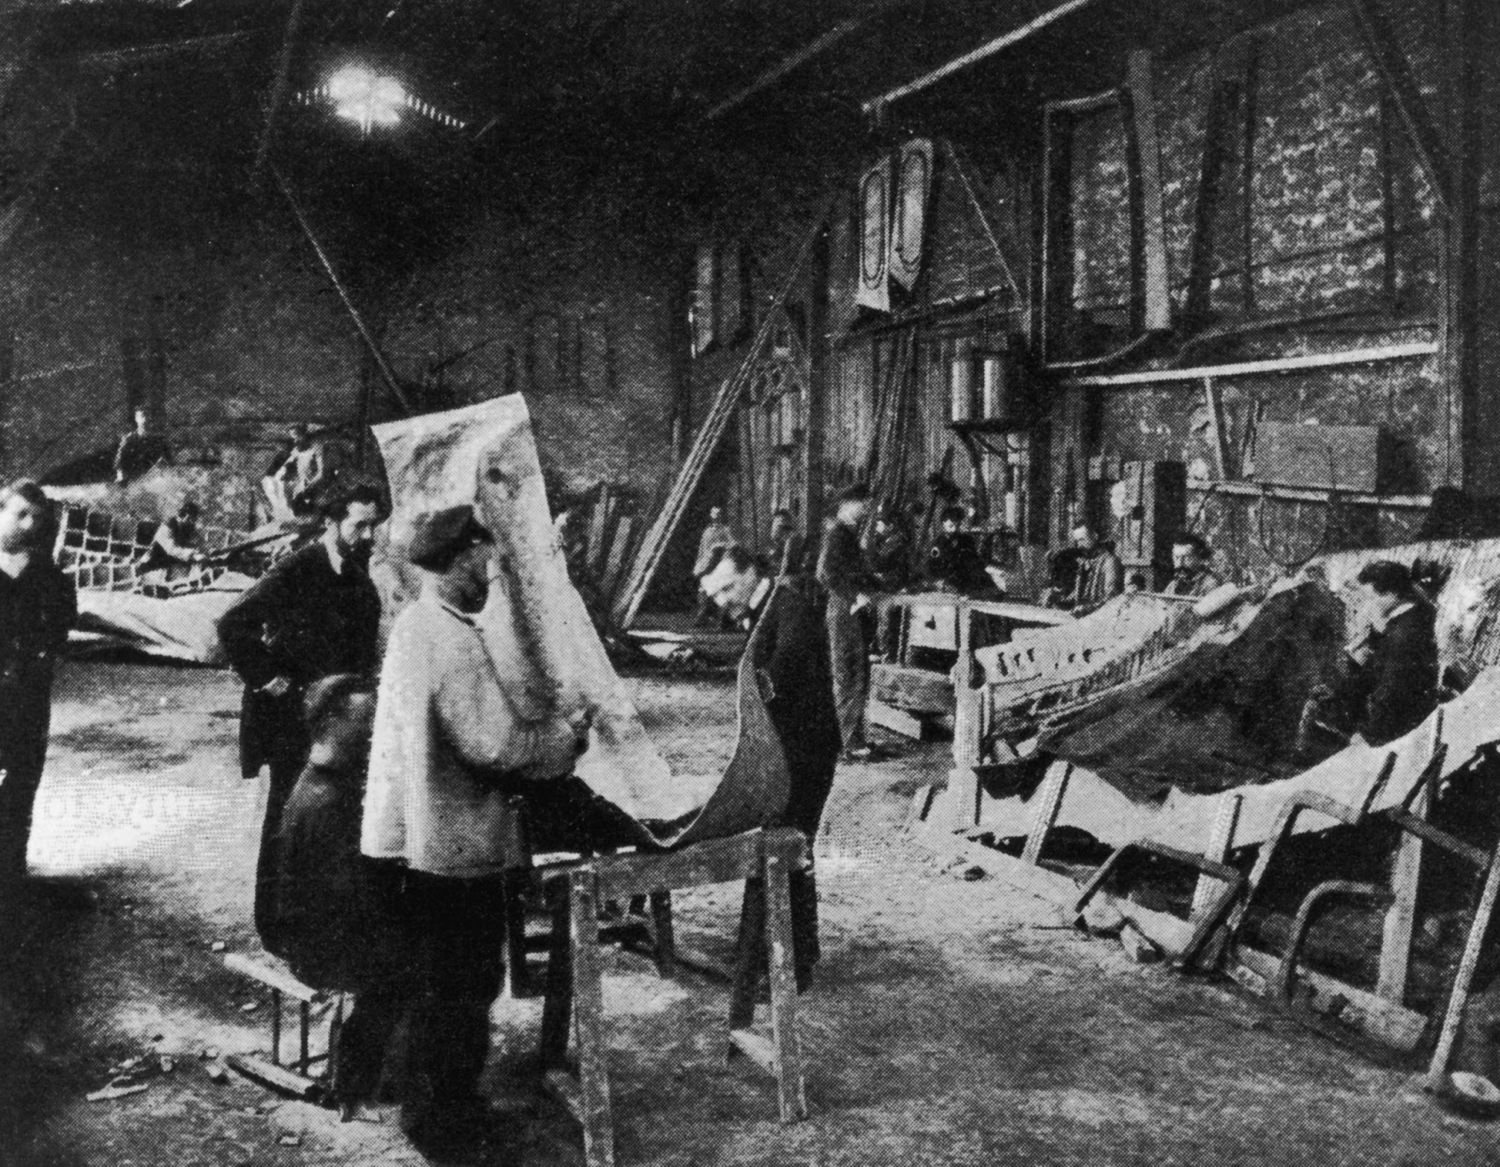 Segments of the Statue of Liberty during its construction in the workshop of French sculptor Frederic Auguste Bartholdi, in Paris circa 1880.